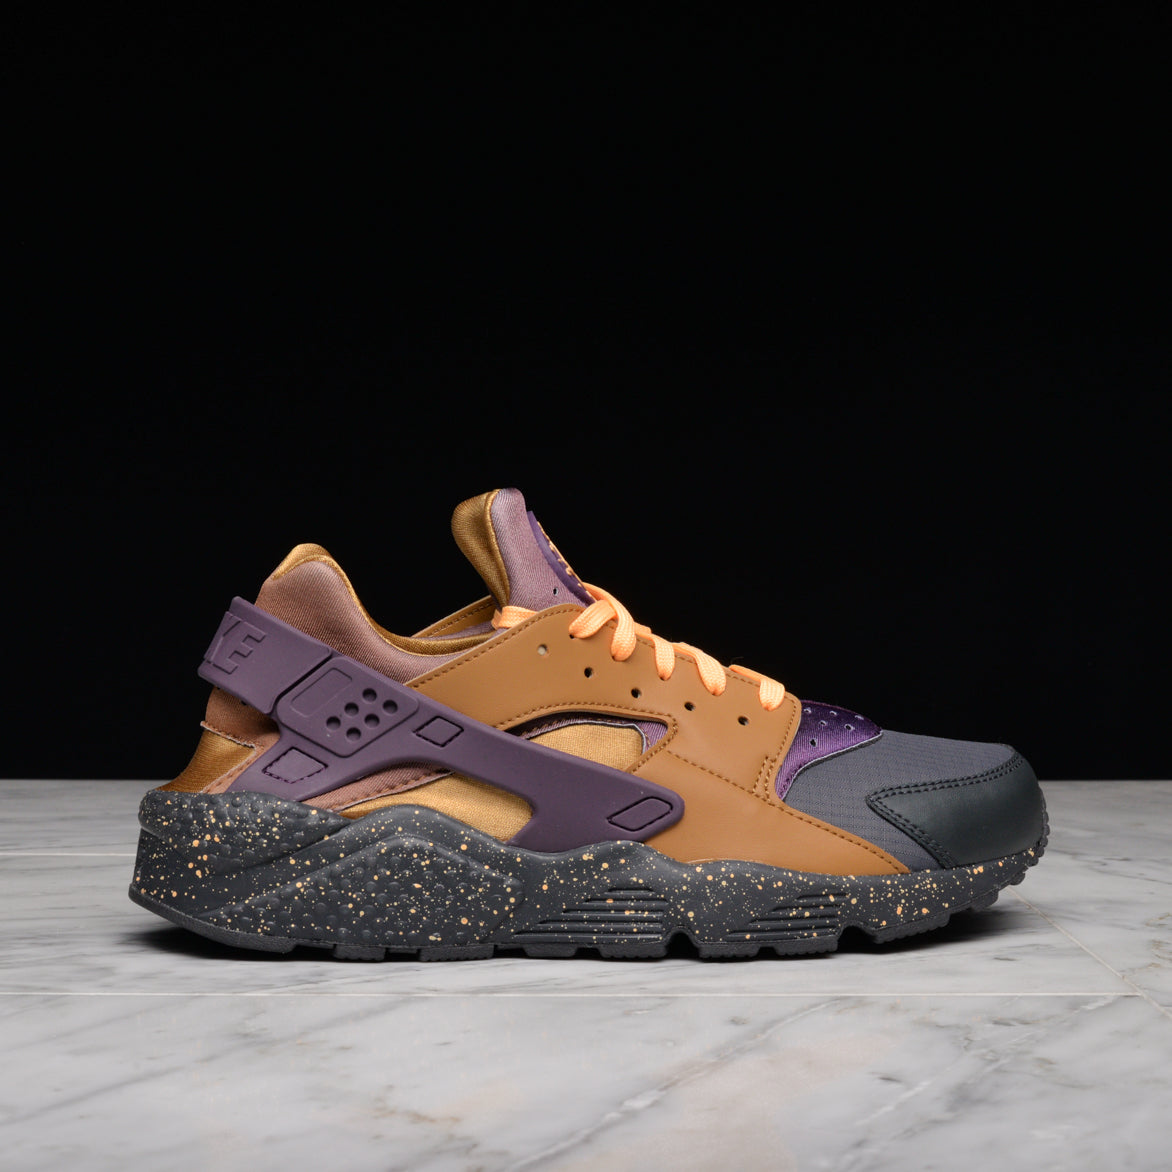 promo code cd4a7 6fbc7 low price nike huarache brown purple 8ca56 7cd42